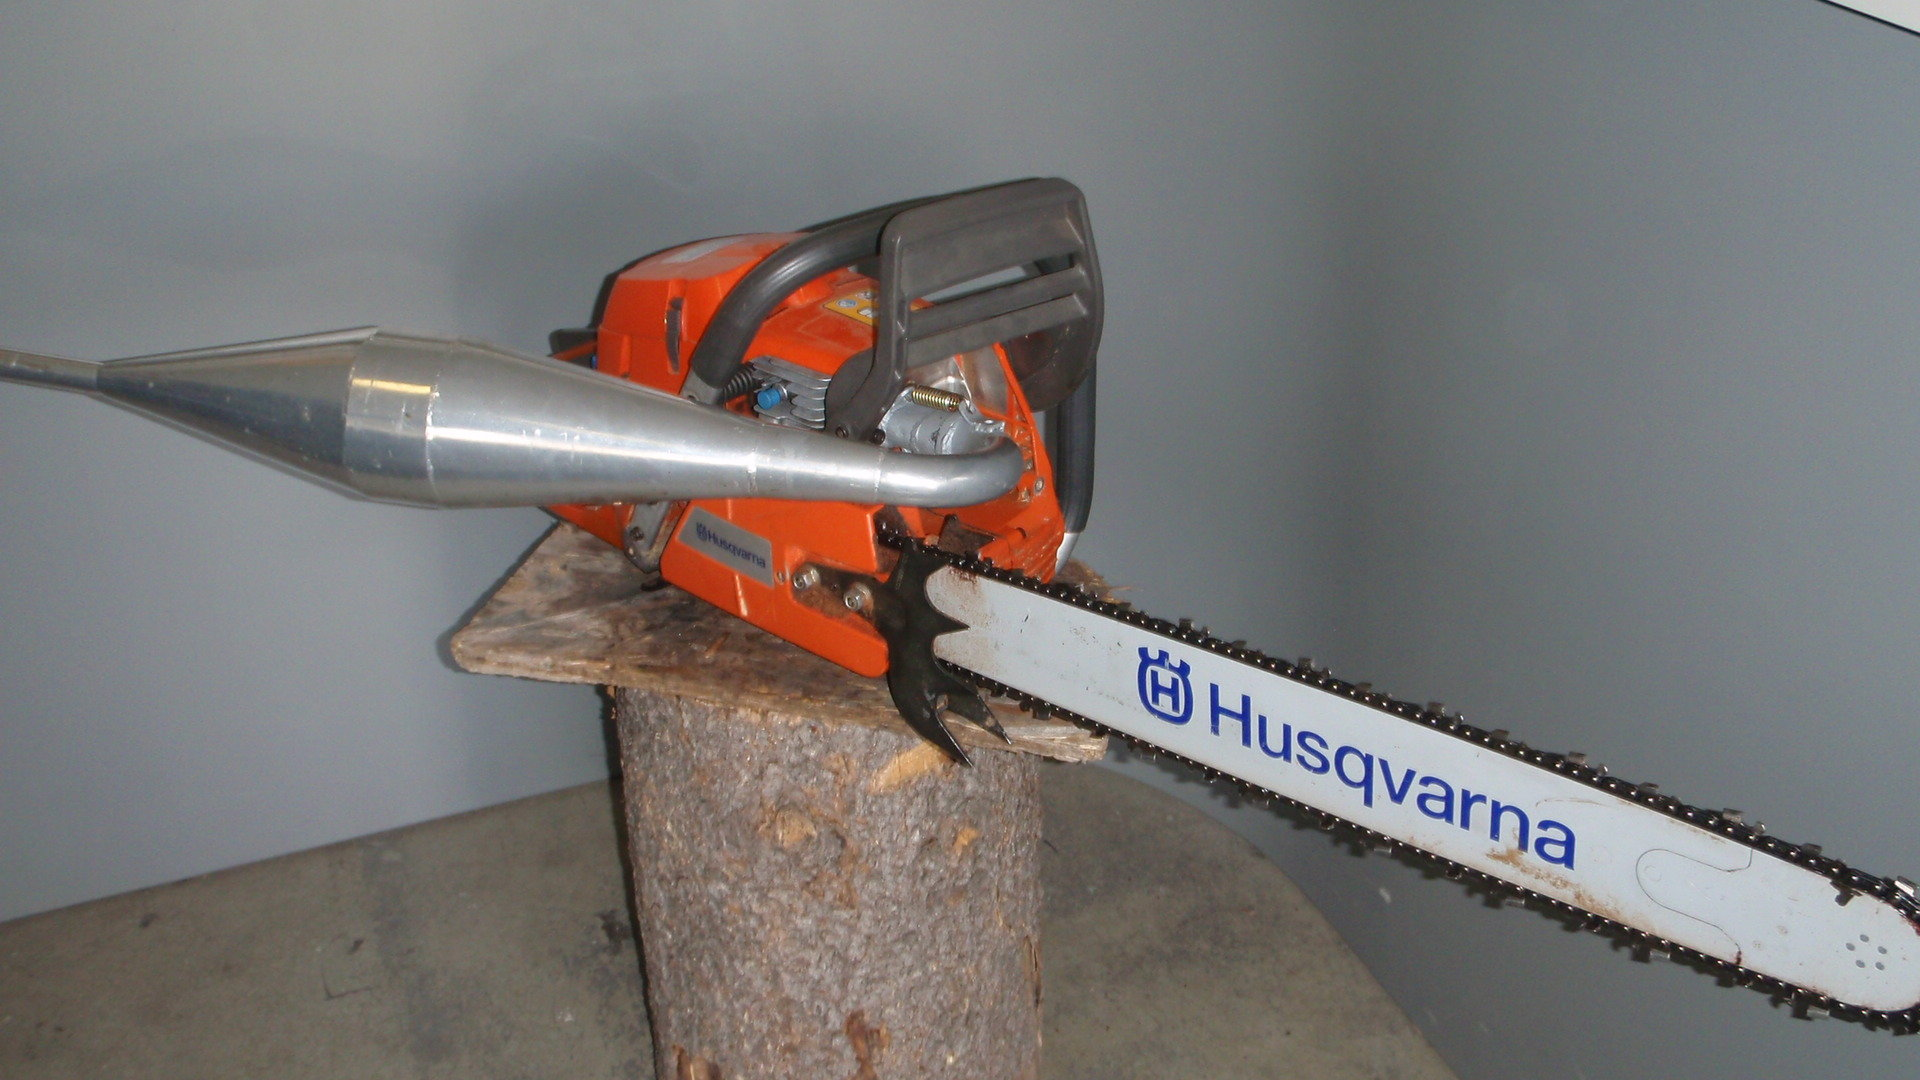 Upgrading chain saw  - Page 2 - The Hull Truth - Boating and